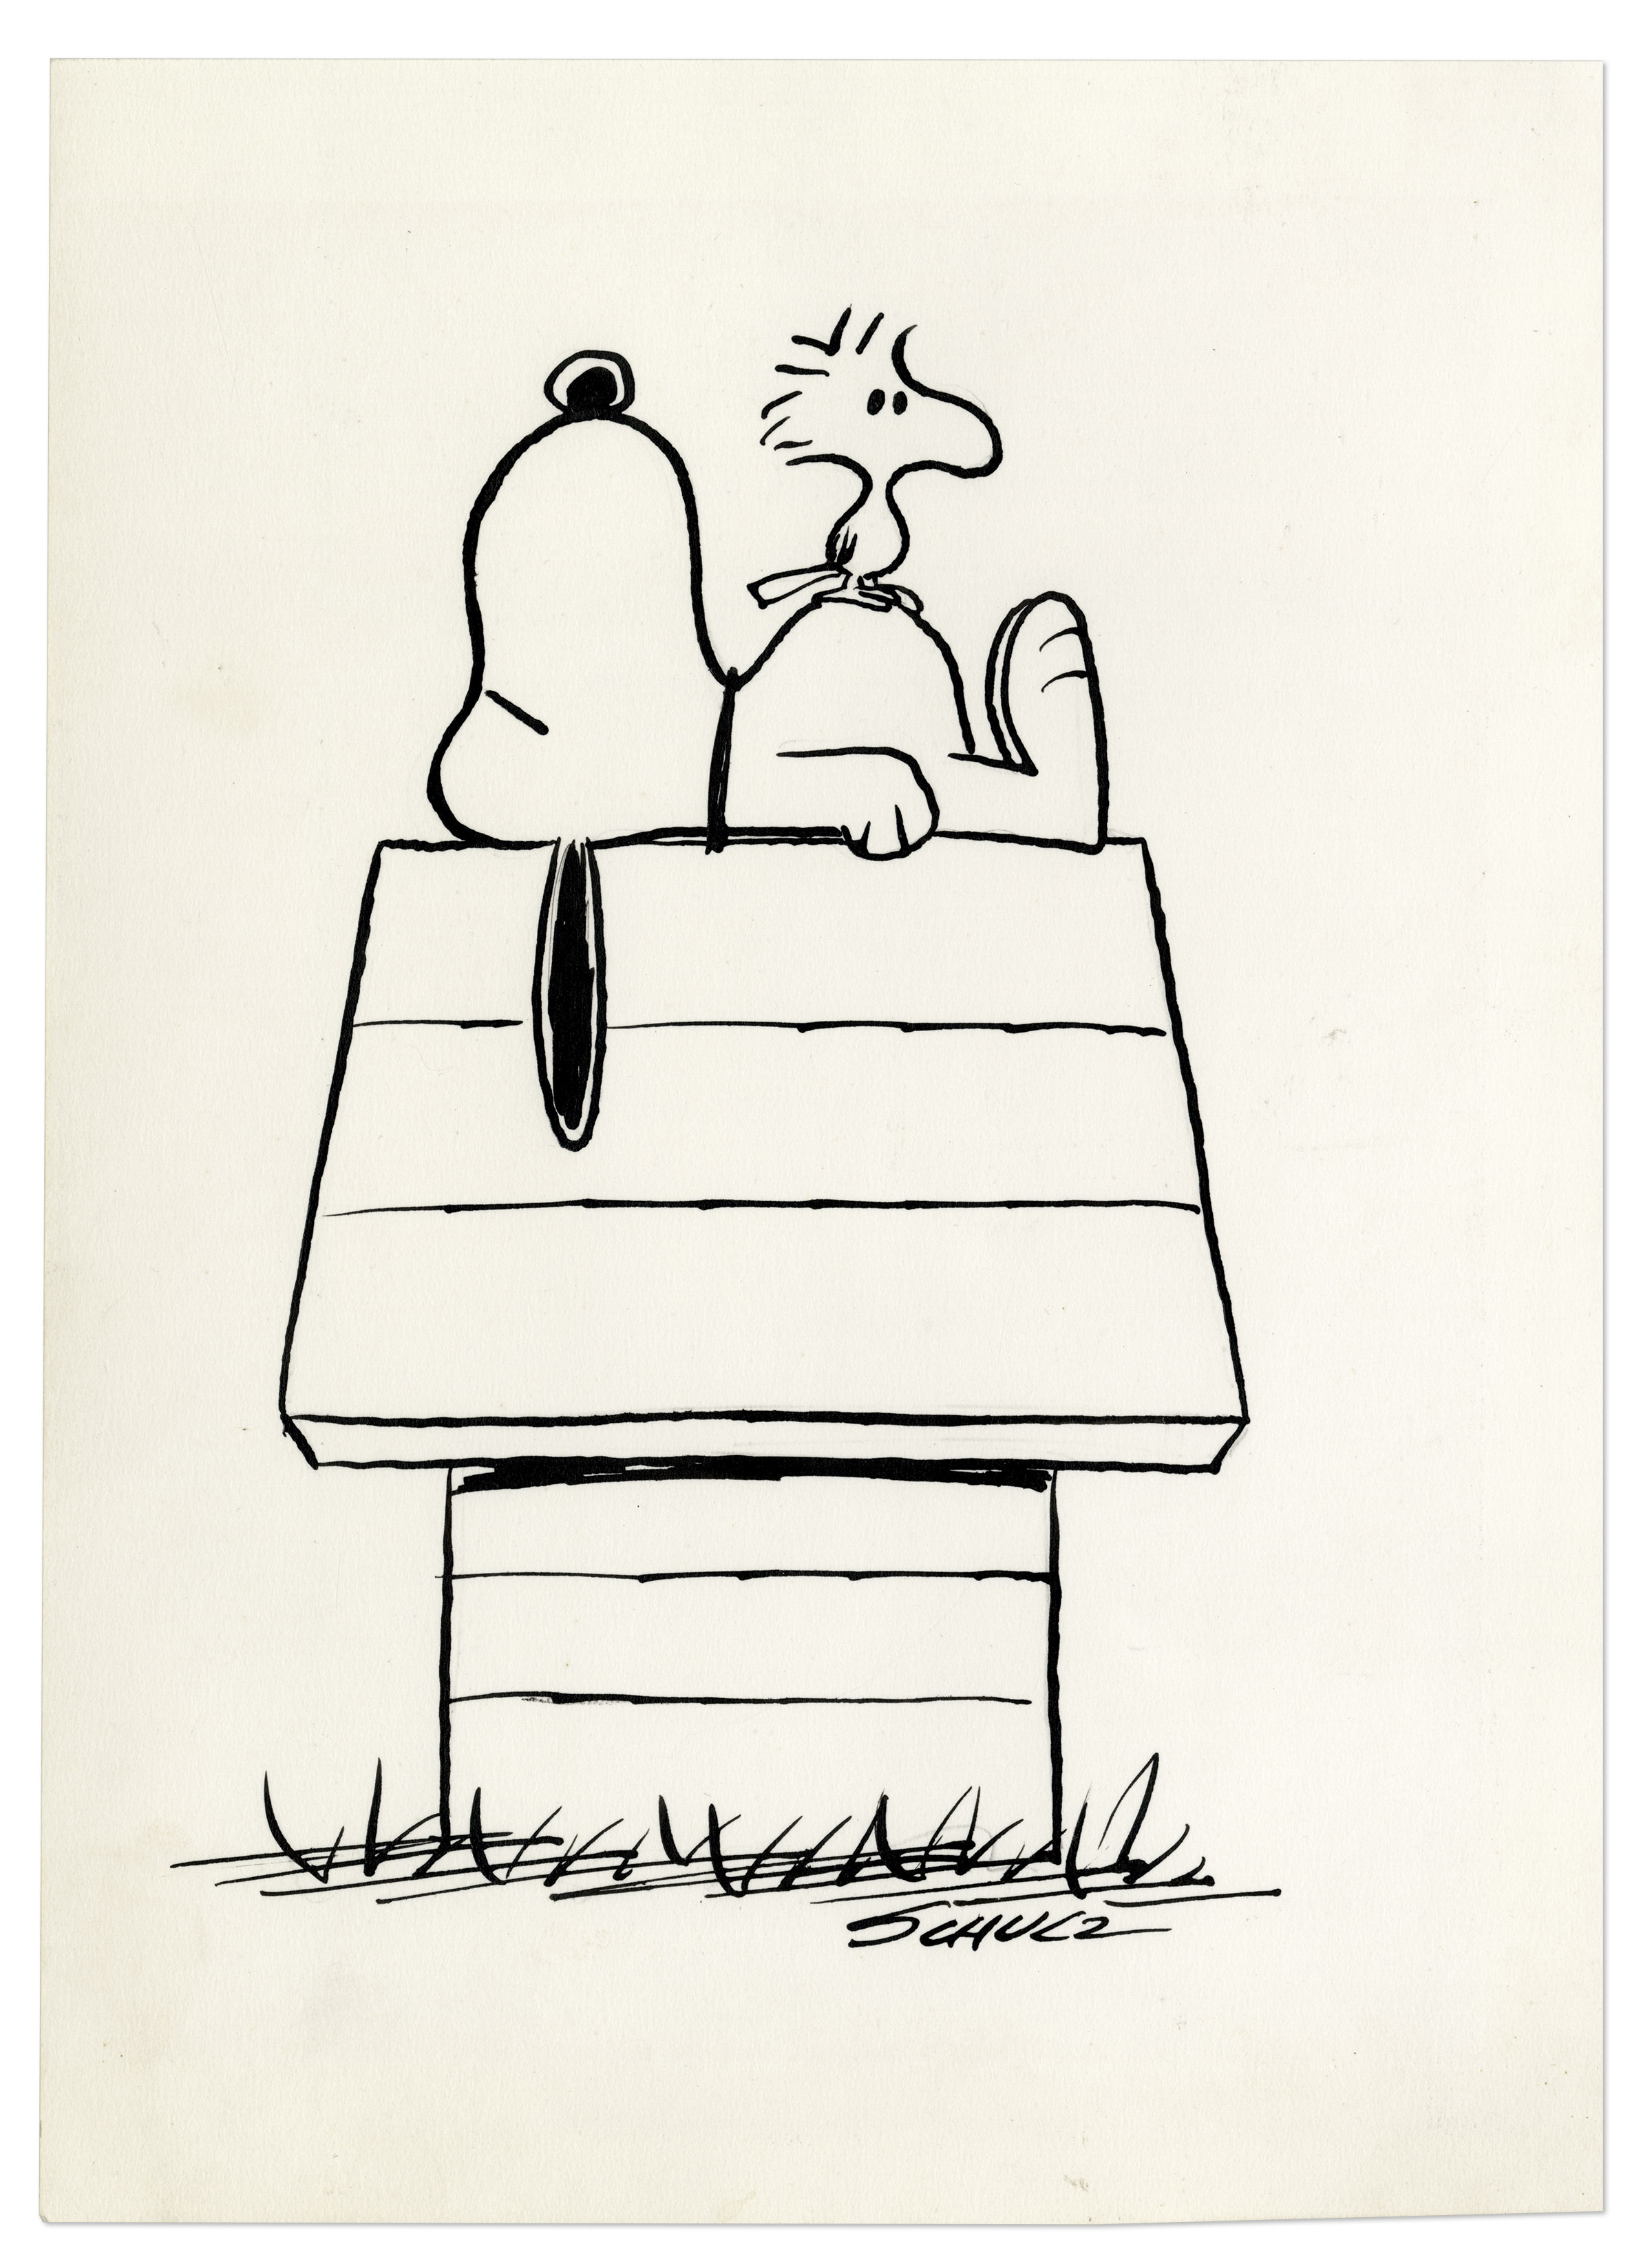 Charles Schulz Snoopy sketch signed